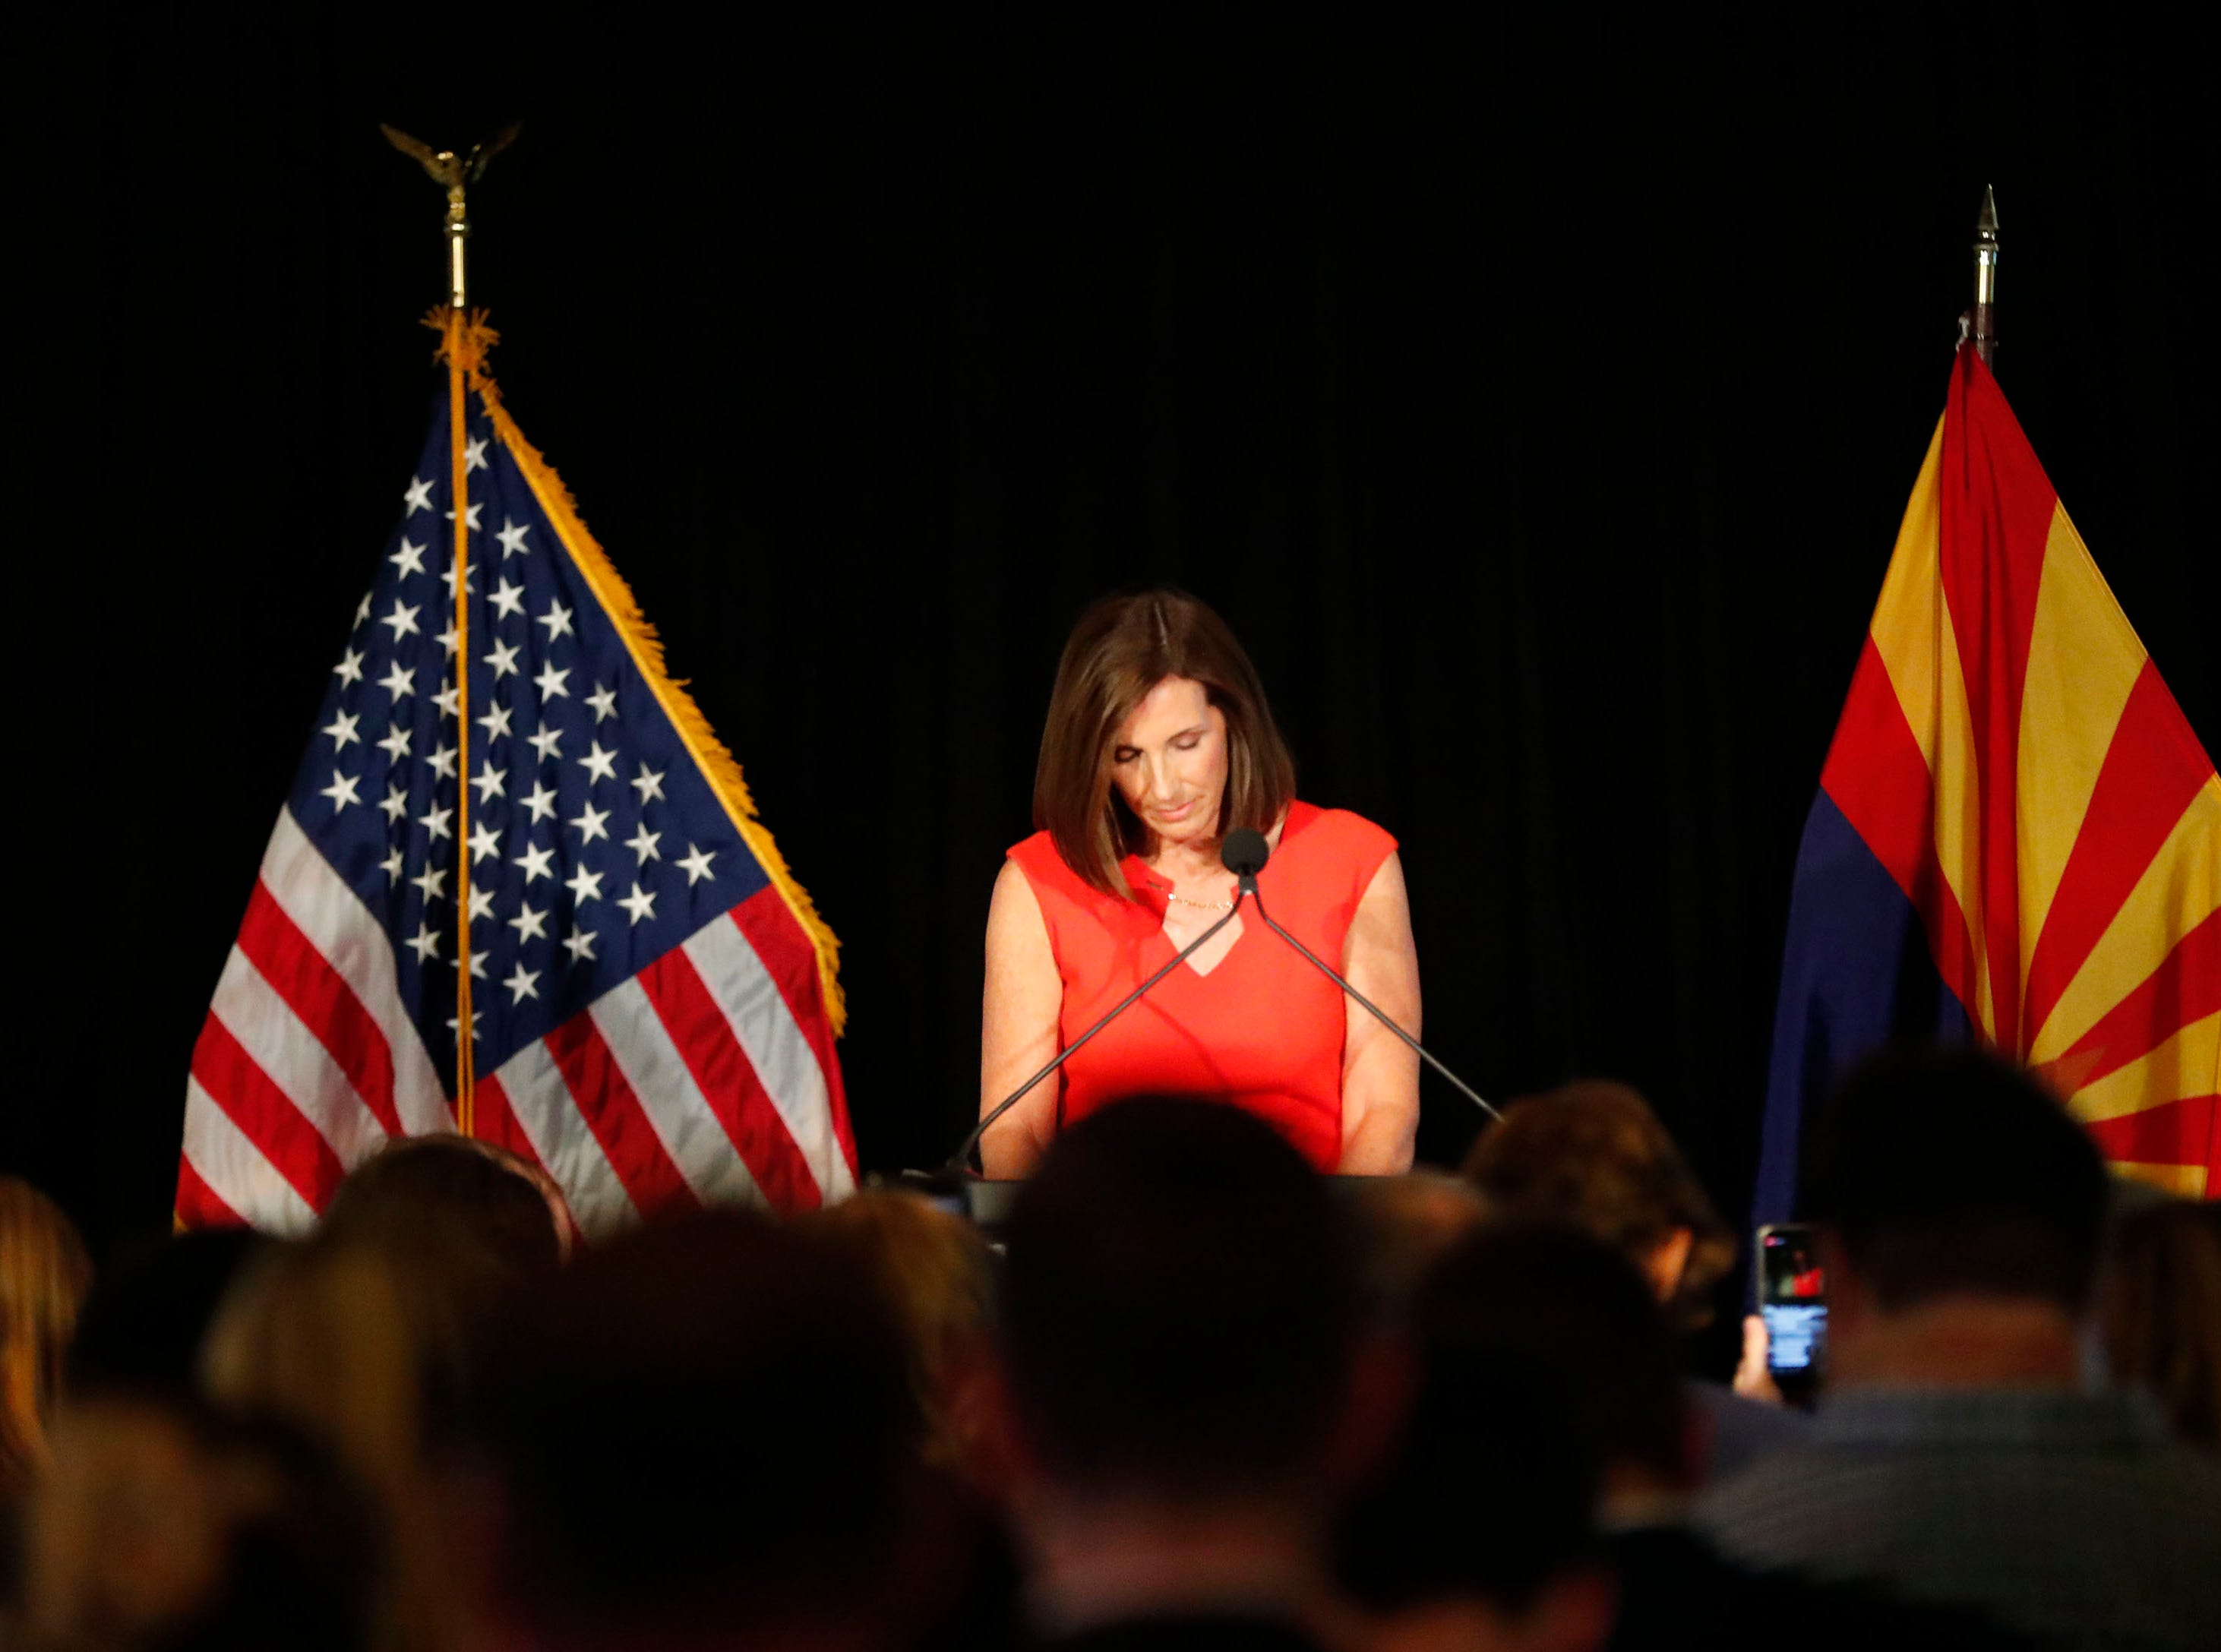 Rep. Martha McSally bows her head during a moment of silence for the late Sen. John McCain during a primary election party In Tempe, Ariz. August 28. 2018. McSally  The two-term congresswoman from Tucson is vying for the Republican nomination for the open U.S. Senate seat.